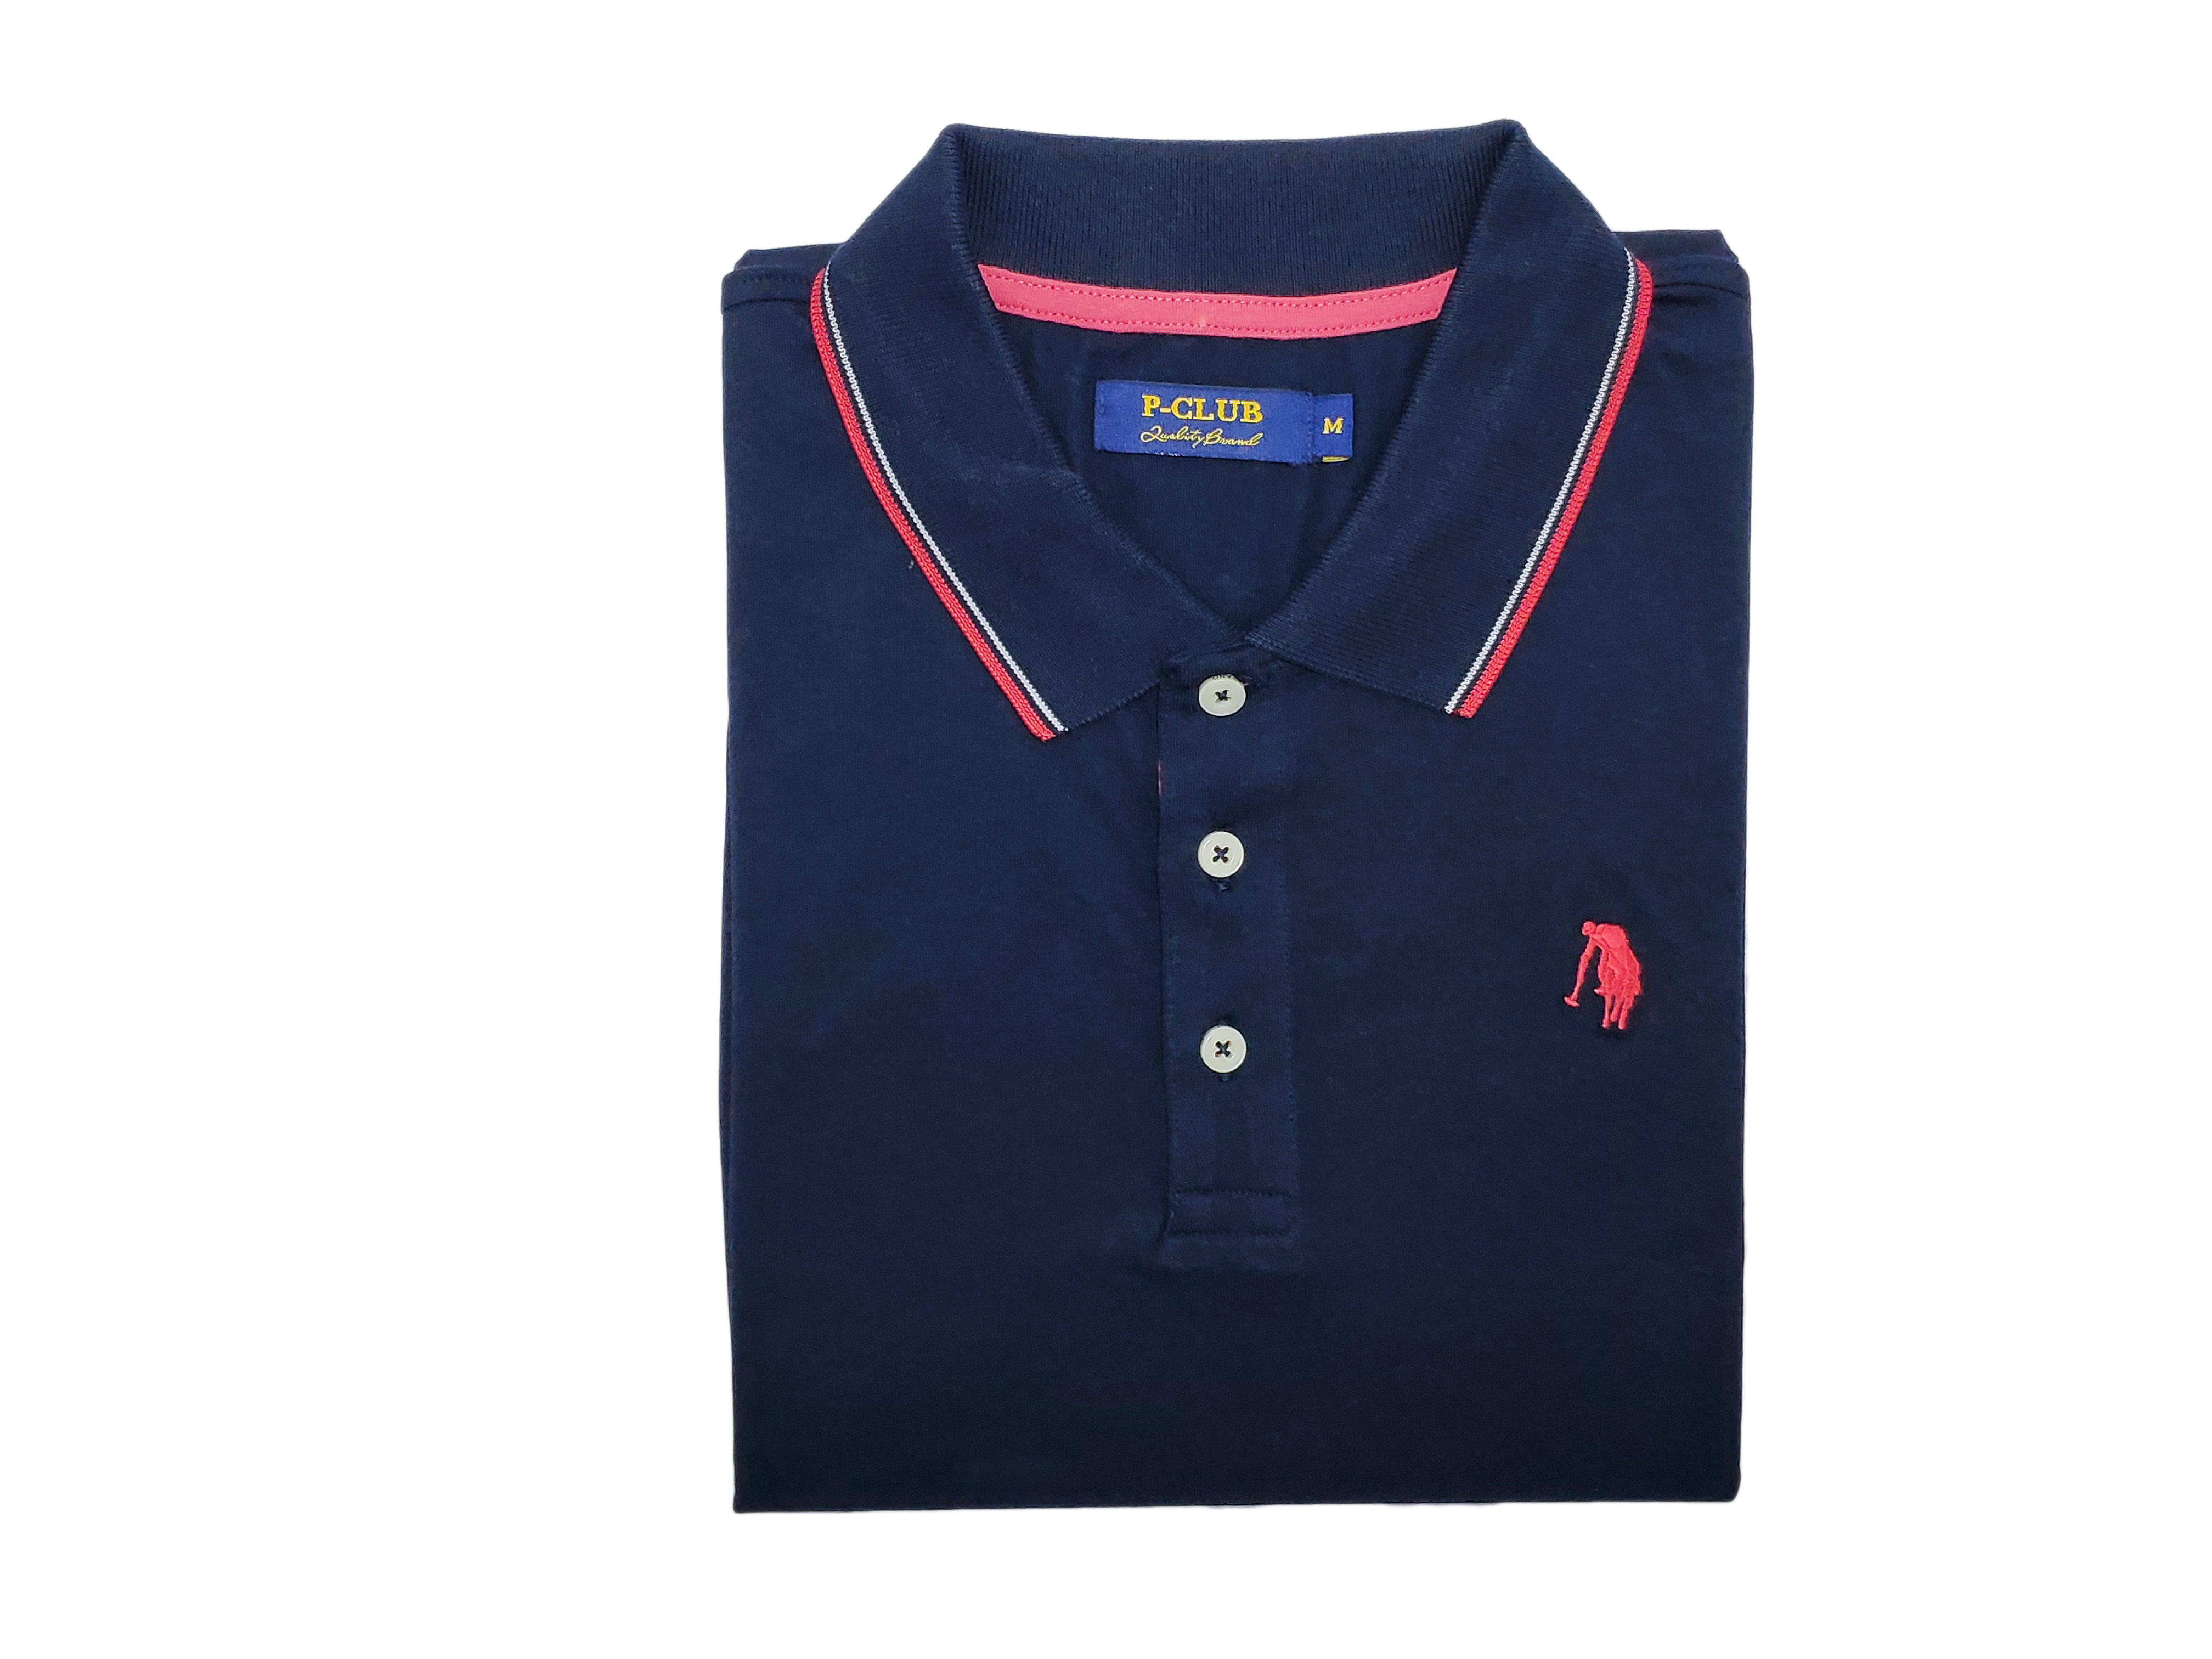 polo m/m jersey uomo POLO BEVERLY HILLS   Polo m/m   MAG22880BLU